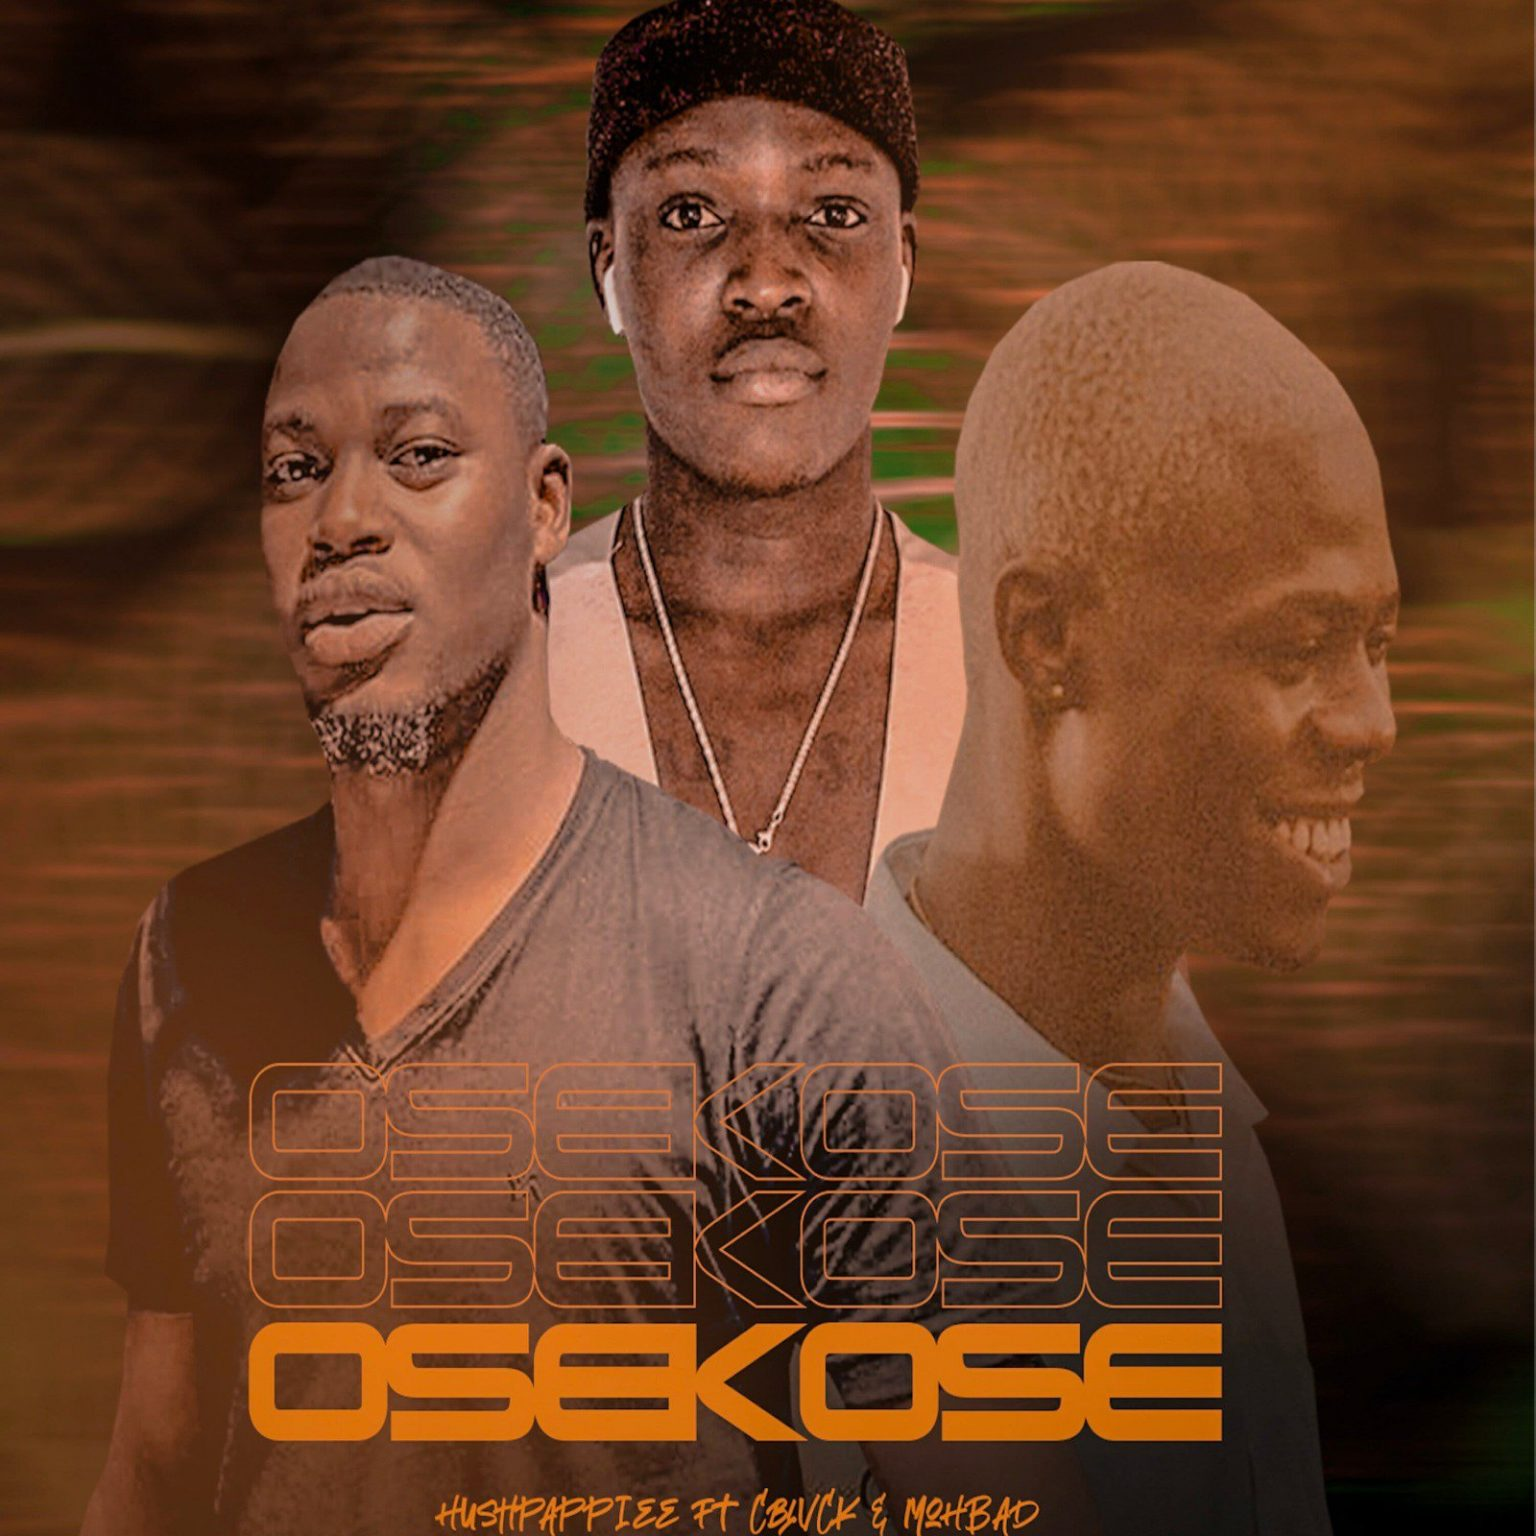 Hushpappiee Ft. CBlvck & Mohbad – Osekose